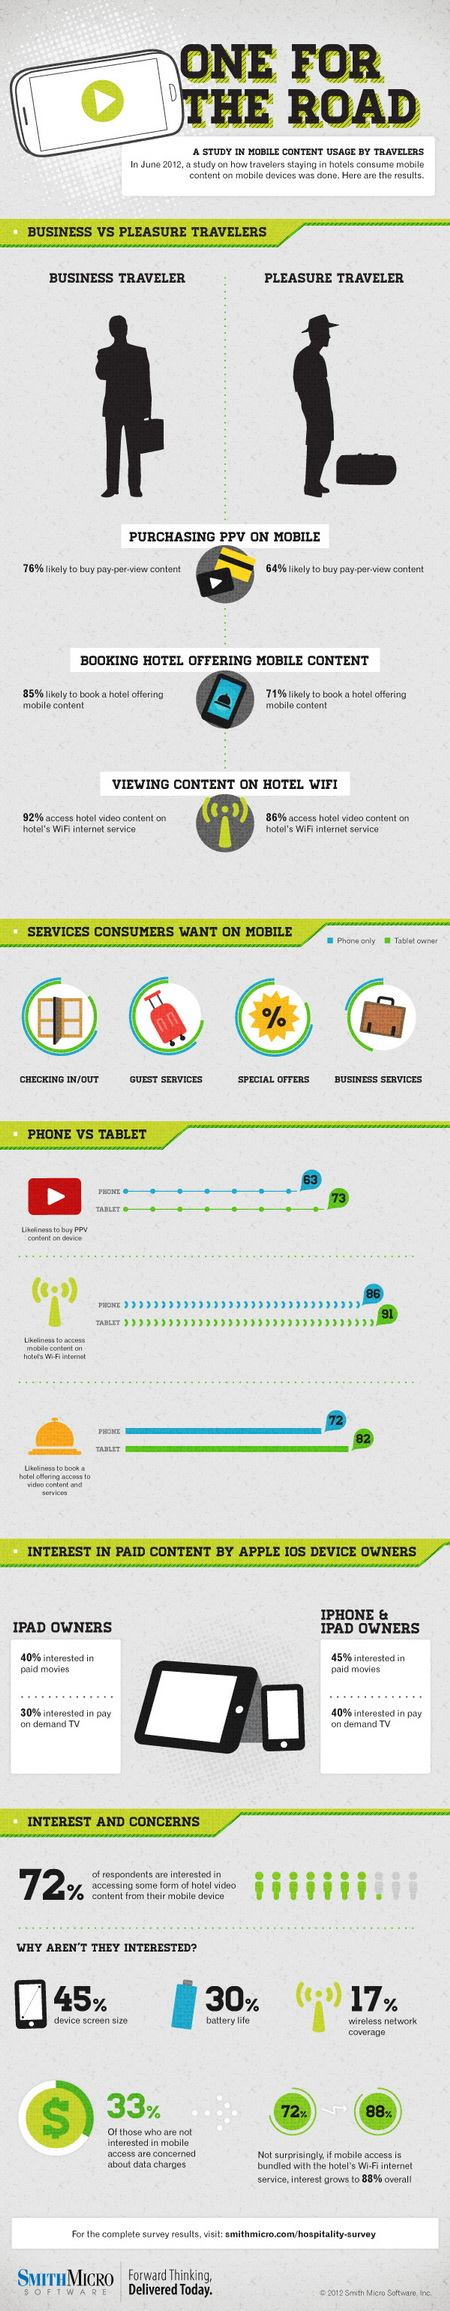 Mobile Video Survey Results Infographic_resize